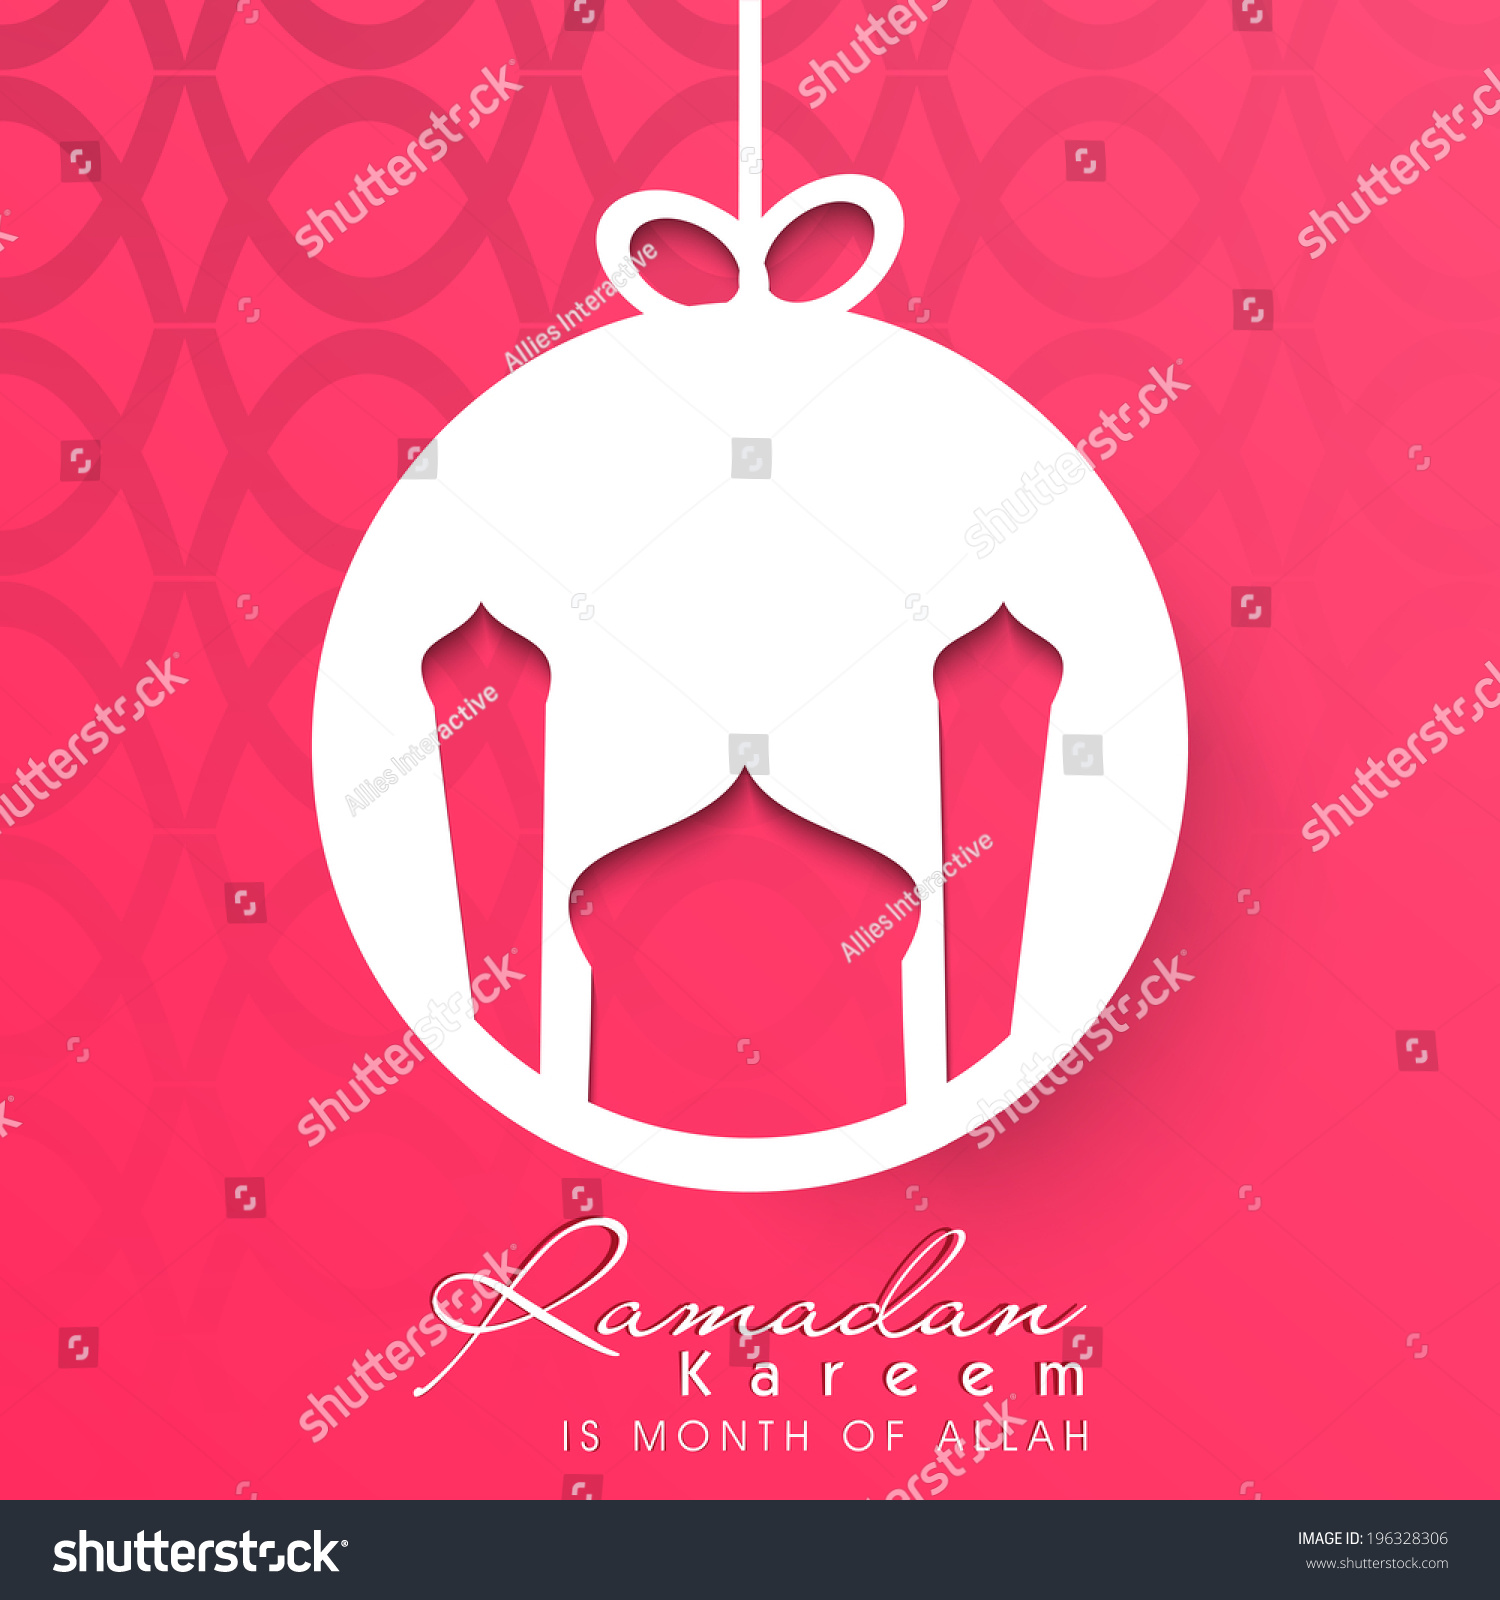 H tag background image - Beautiful Hanging Sticker Tag Or Label With Mosque Design On Pink Background For Holy Month